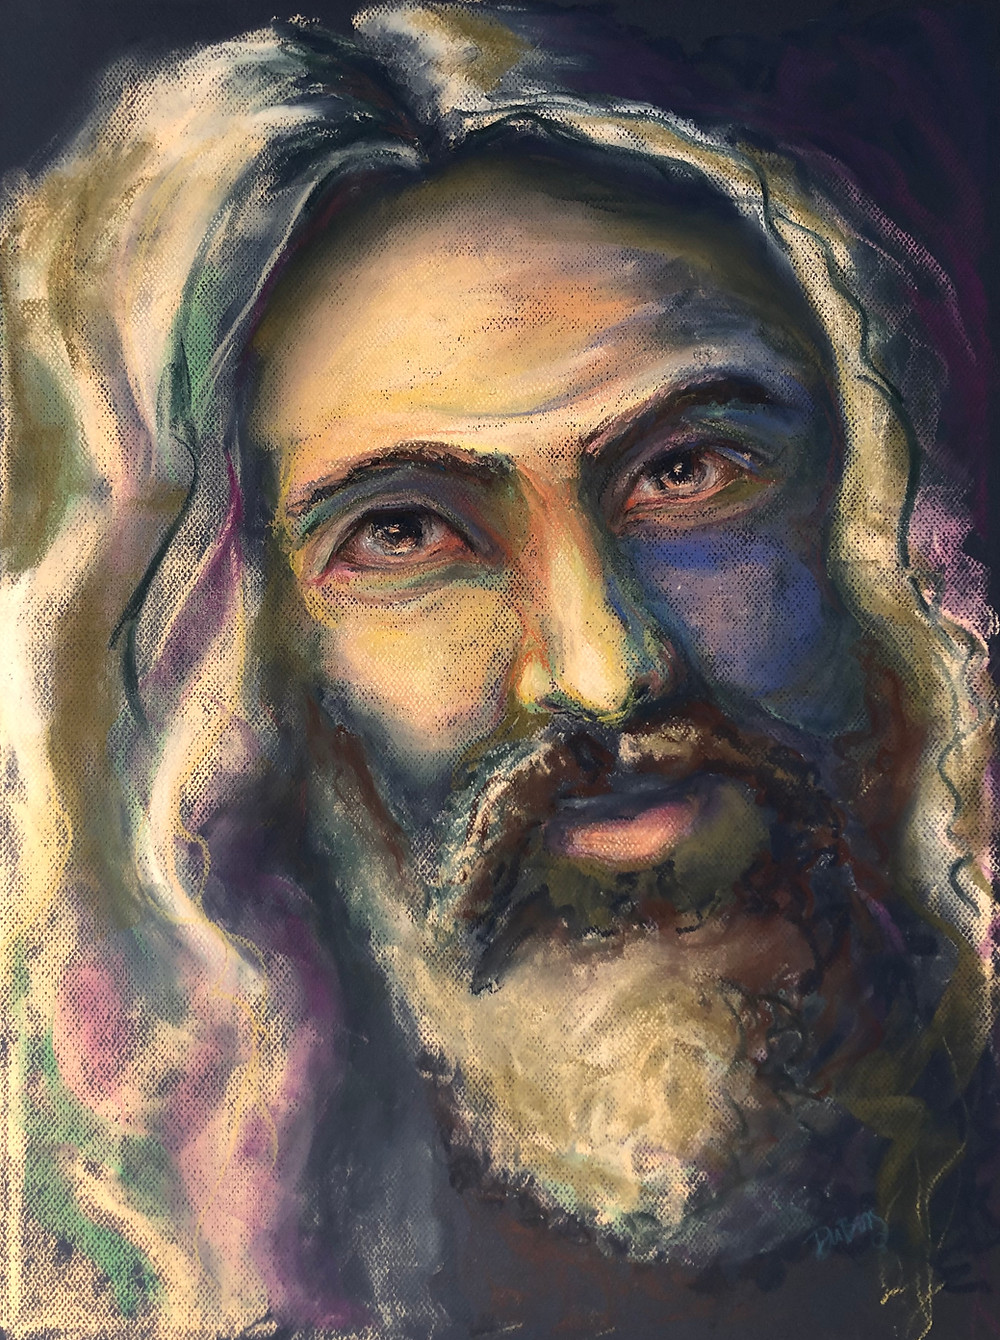 A colorful pastel portrait of Jesus Christ